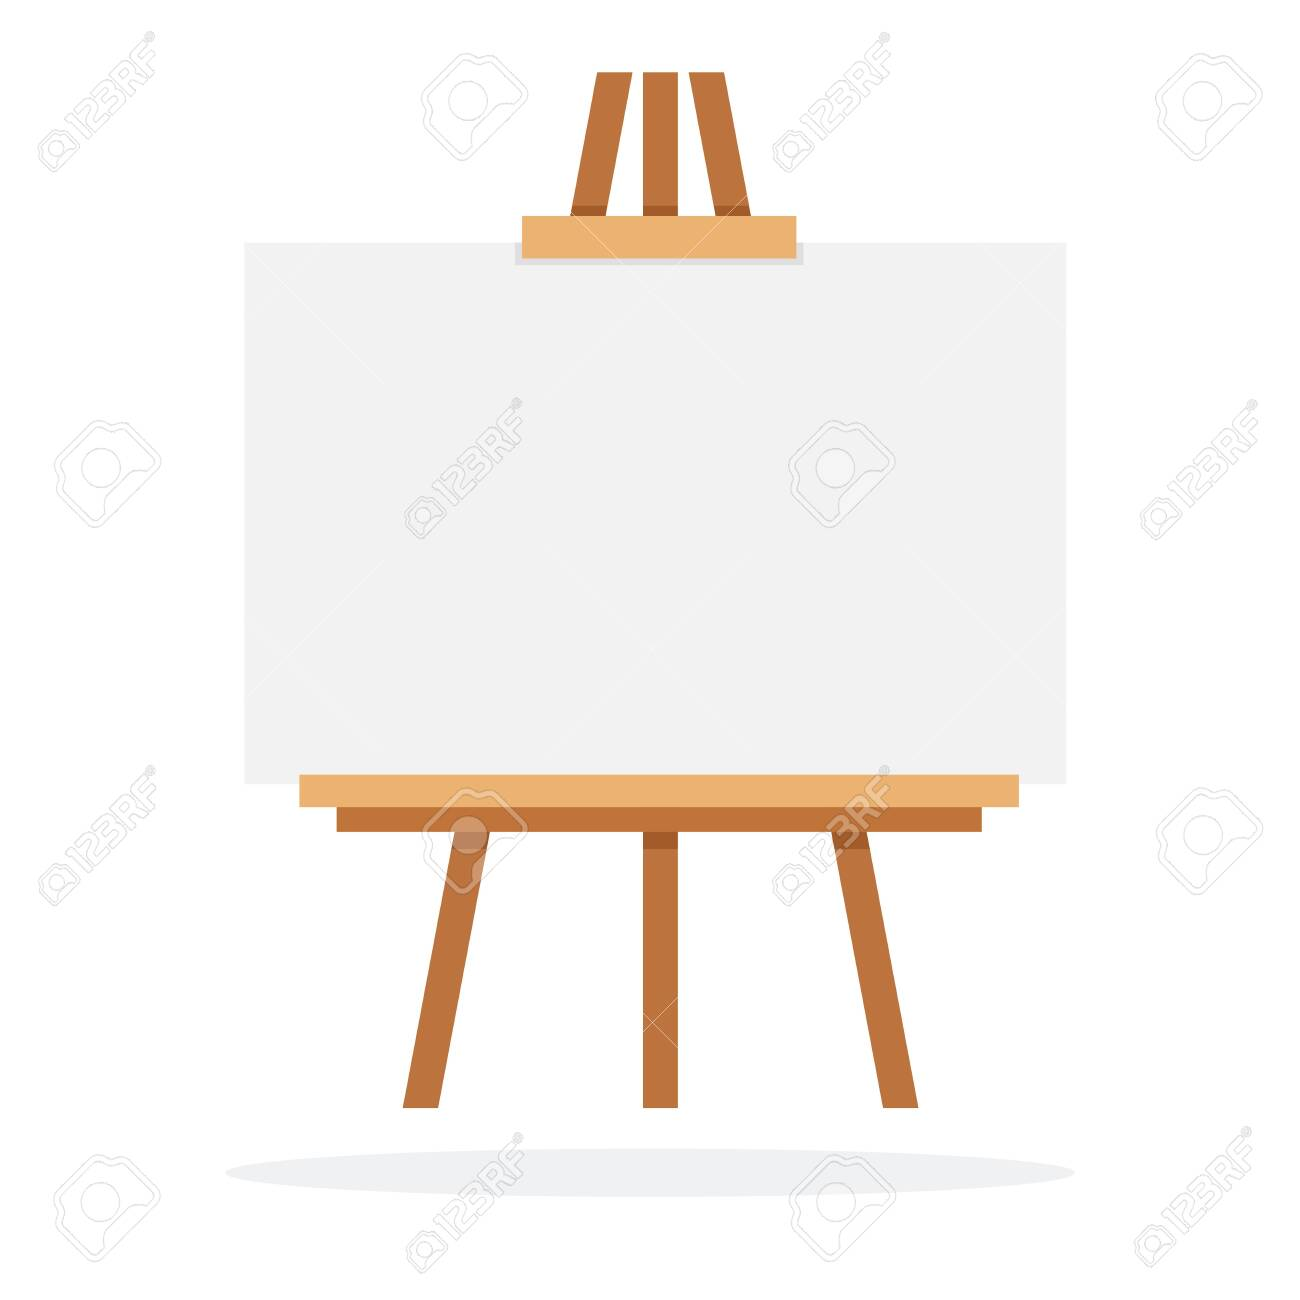 Wooden easel with whiteboard vector flat material design isolated on white - 137002885